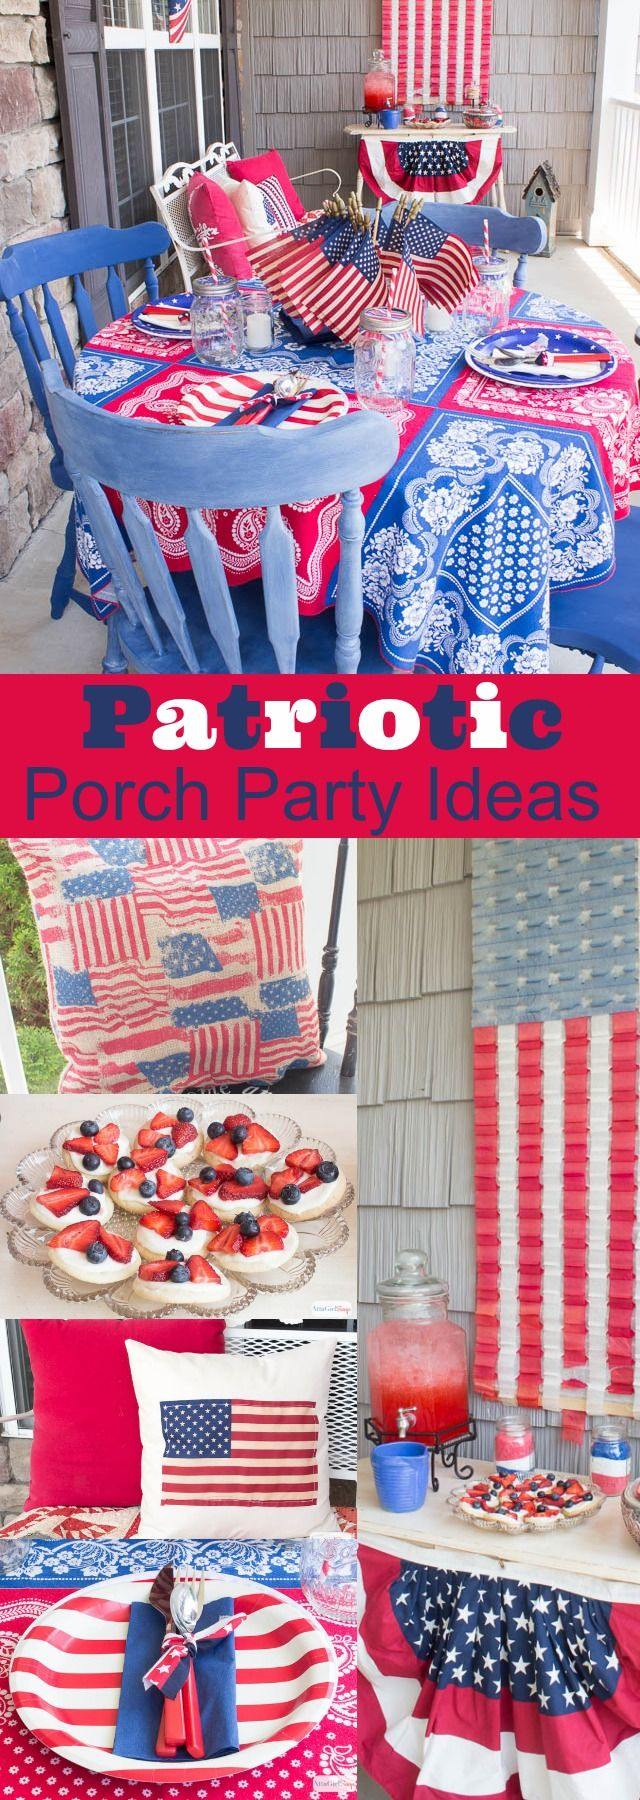 330 best images about 4th of July Decor on Pinterest | God bless ...